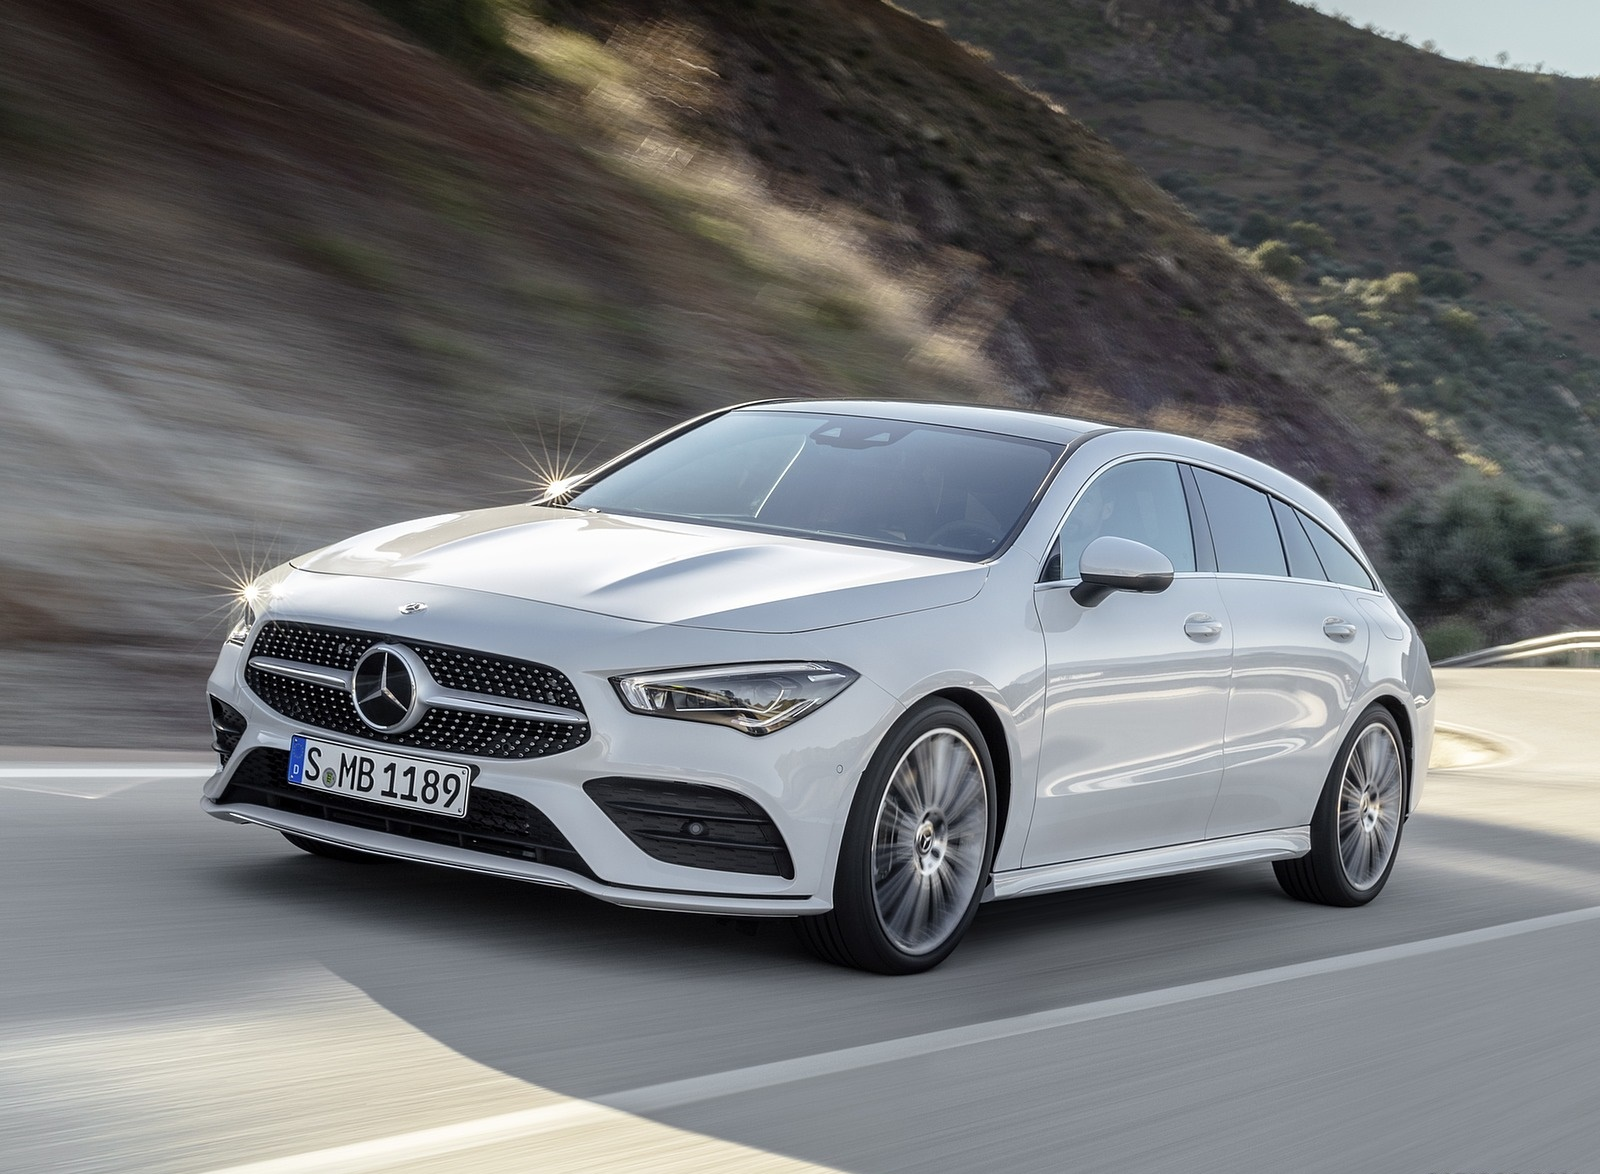 2020 Mercedes-Benz CLA Shooting Brake AMG-Line (Color: Digital White) Front Three-Quarter Wallpapers (3)